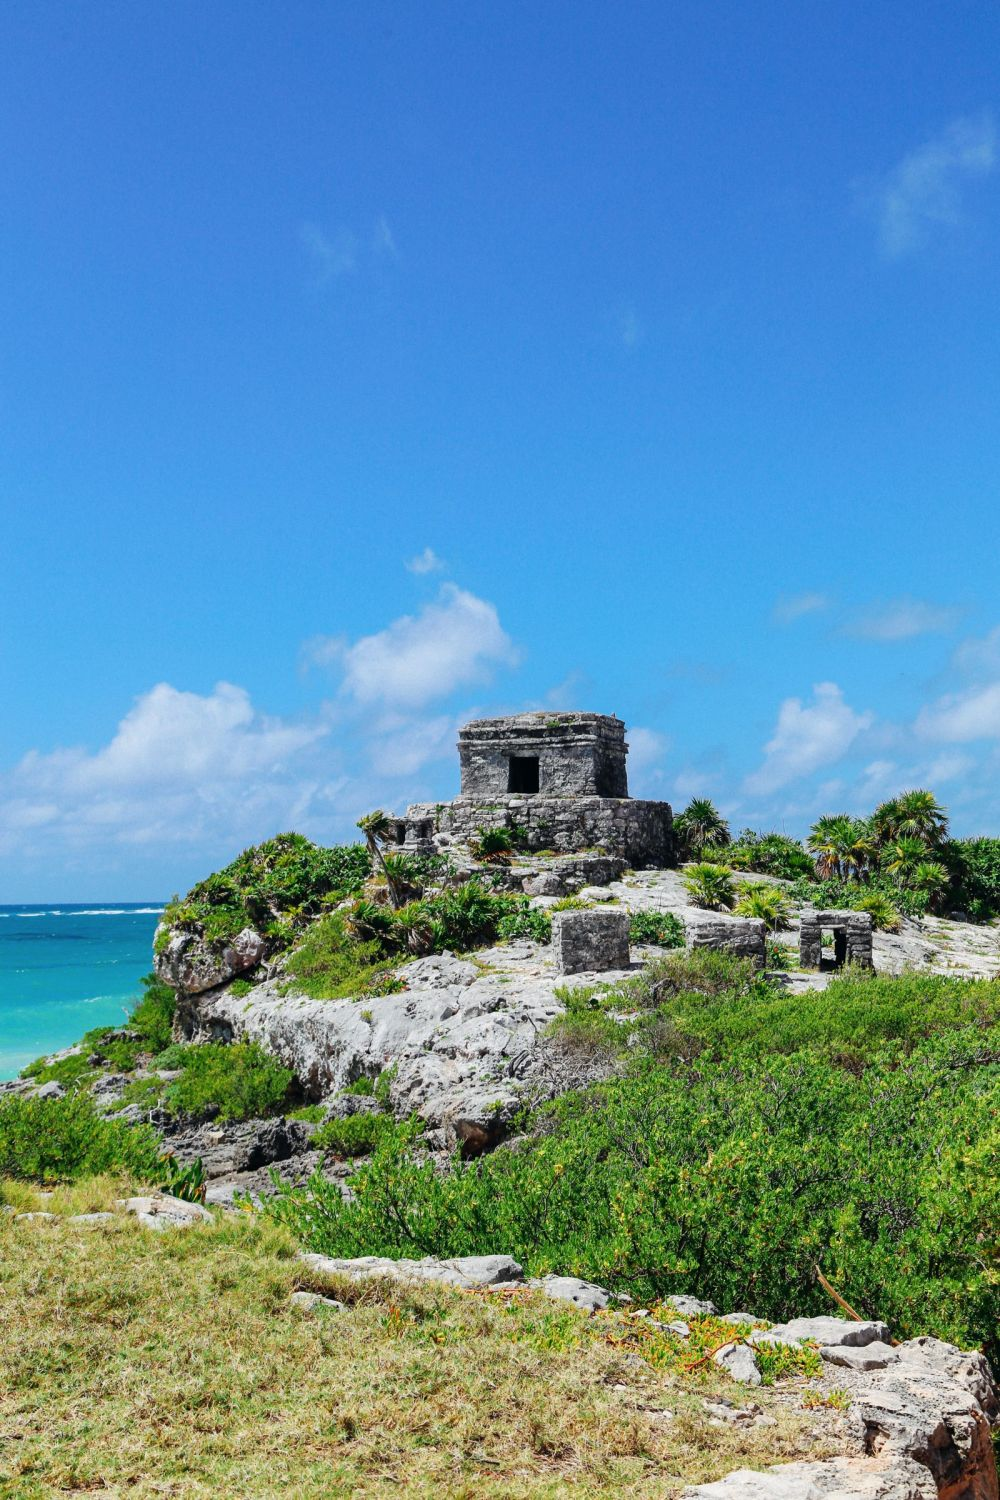 9 Things To Do When You Visit Cancun In Mexico That Don't Involve Partying (38)